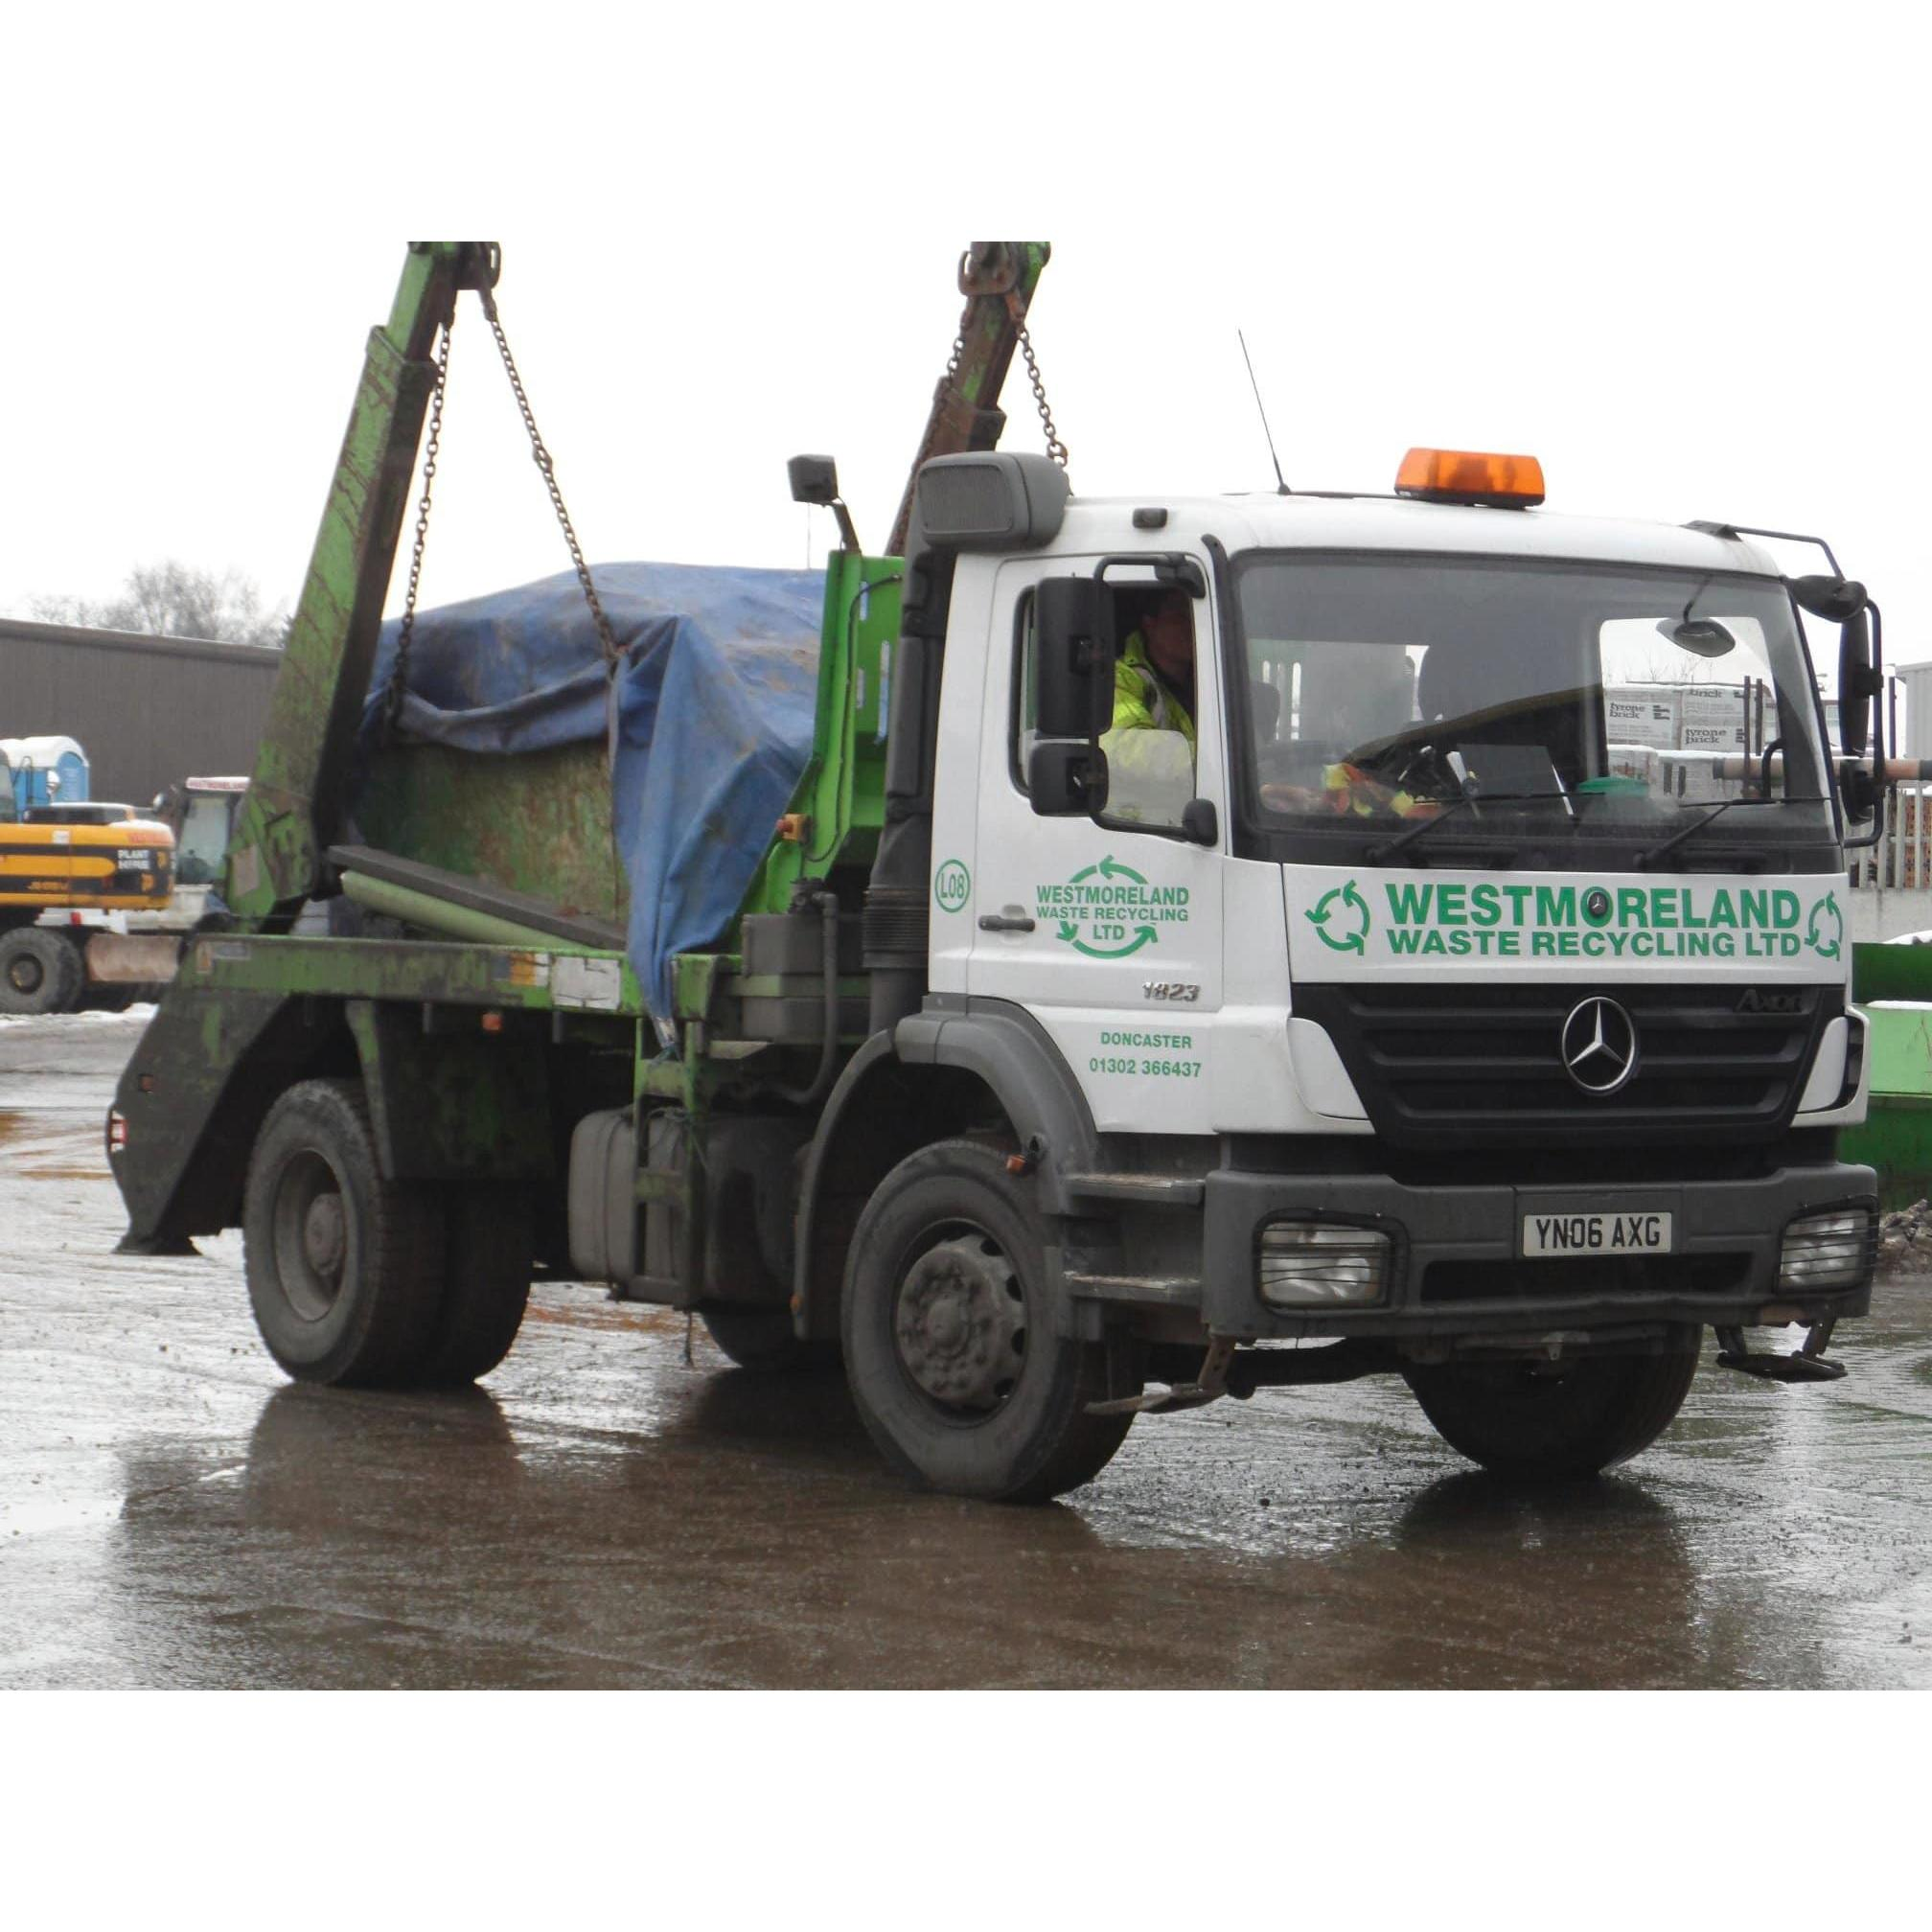 West Moreland Waste Recycling - Doncaster, South Yorkshire DN1 3RE - 01302 366437 | ShowMeLocal.com